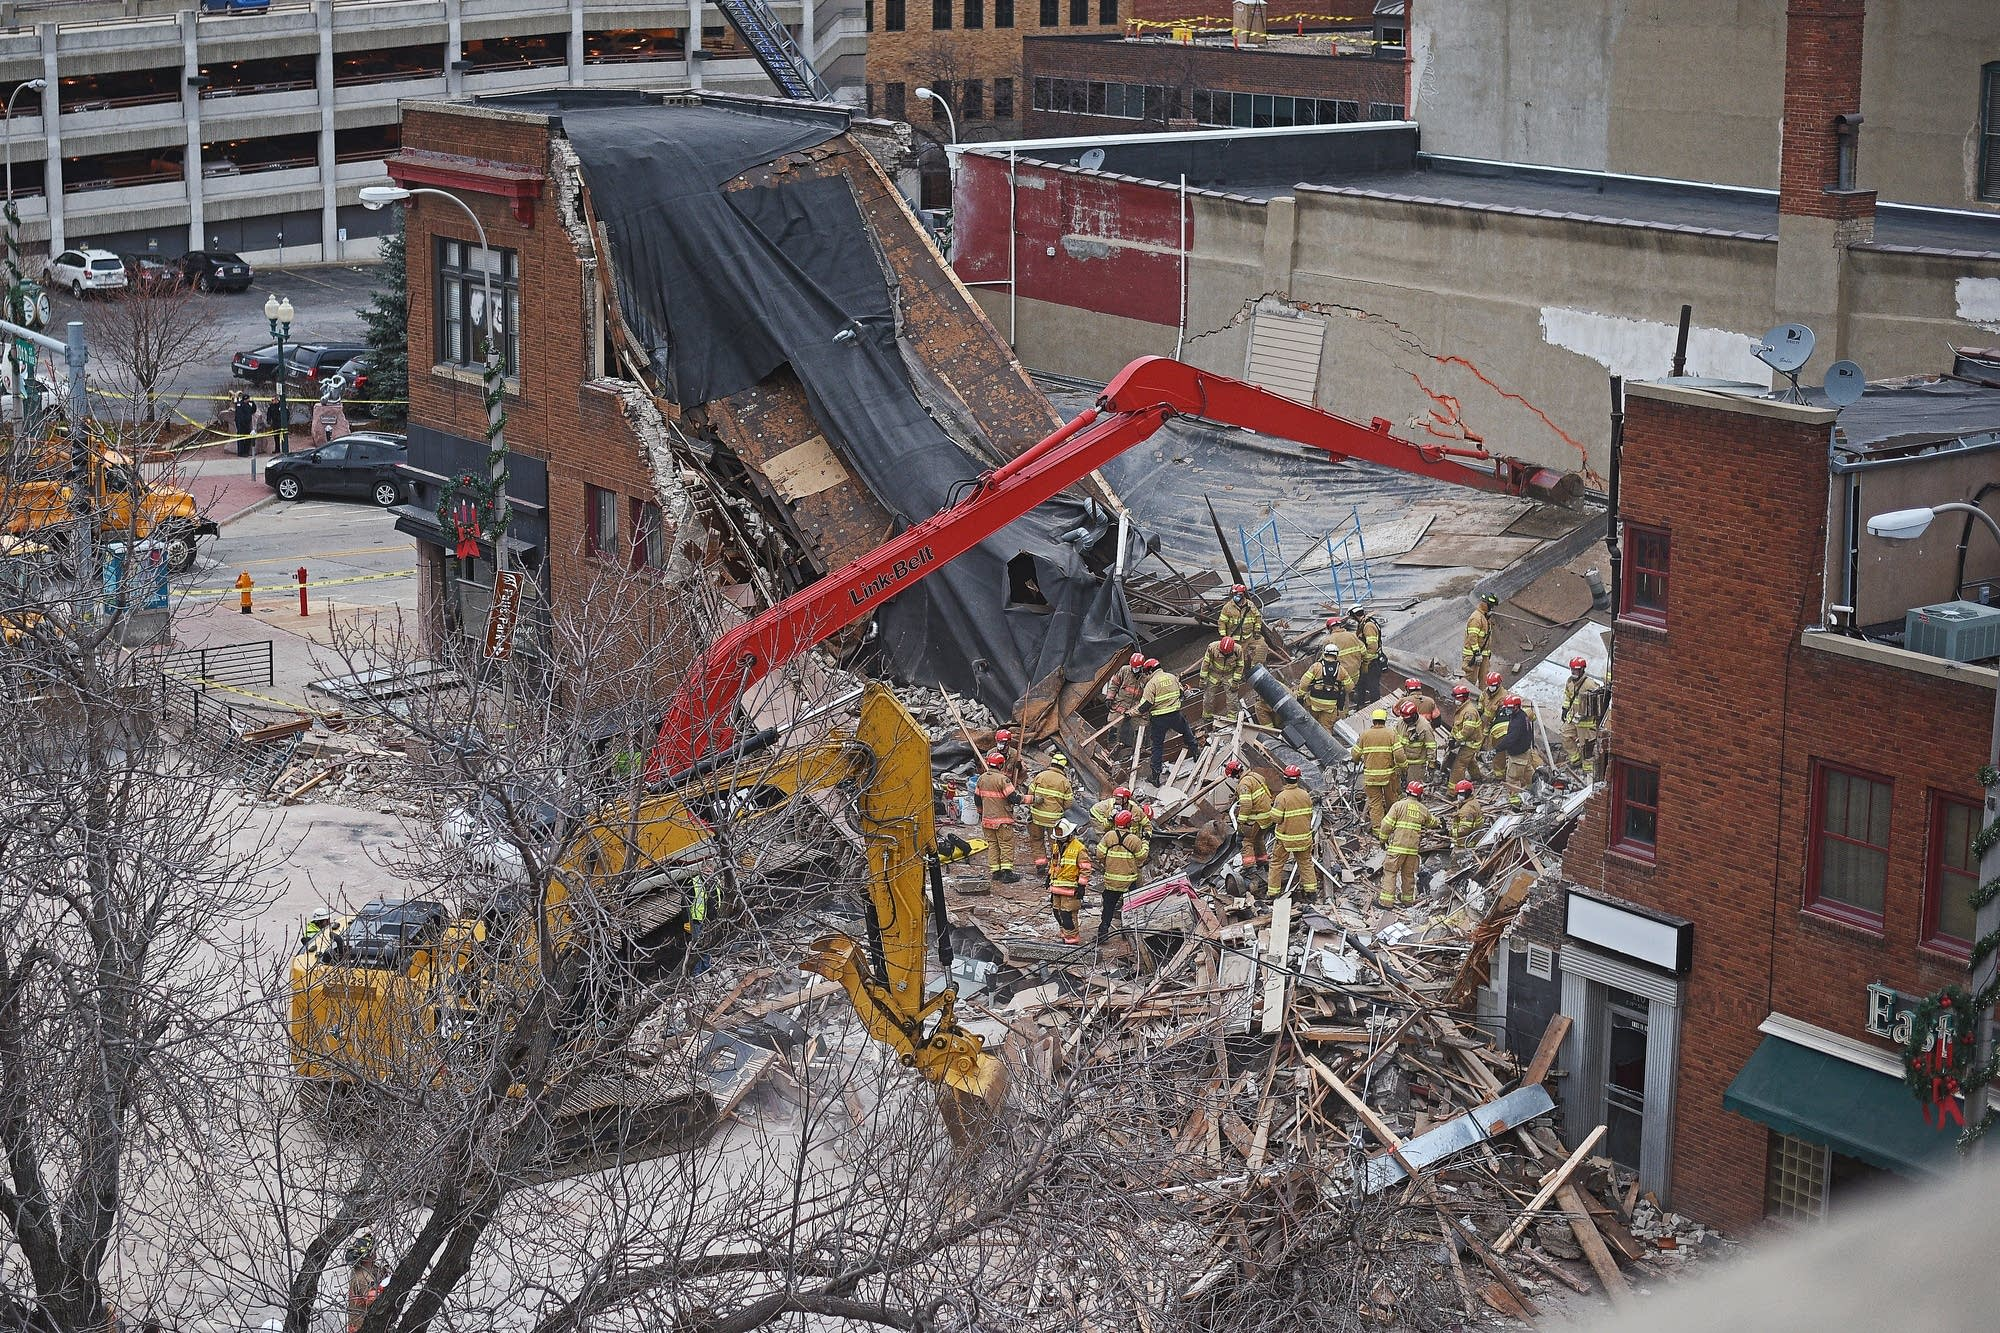 Emergency personnel on scene after the collapse.